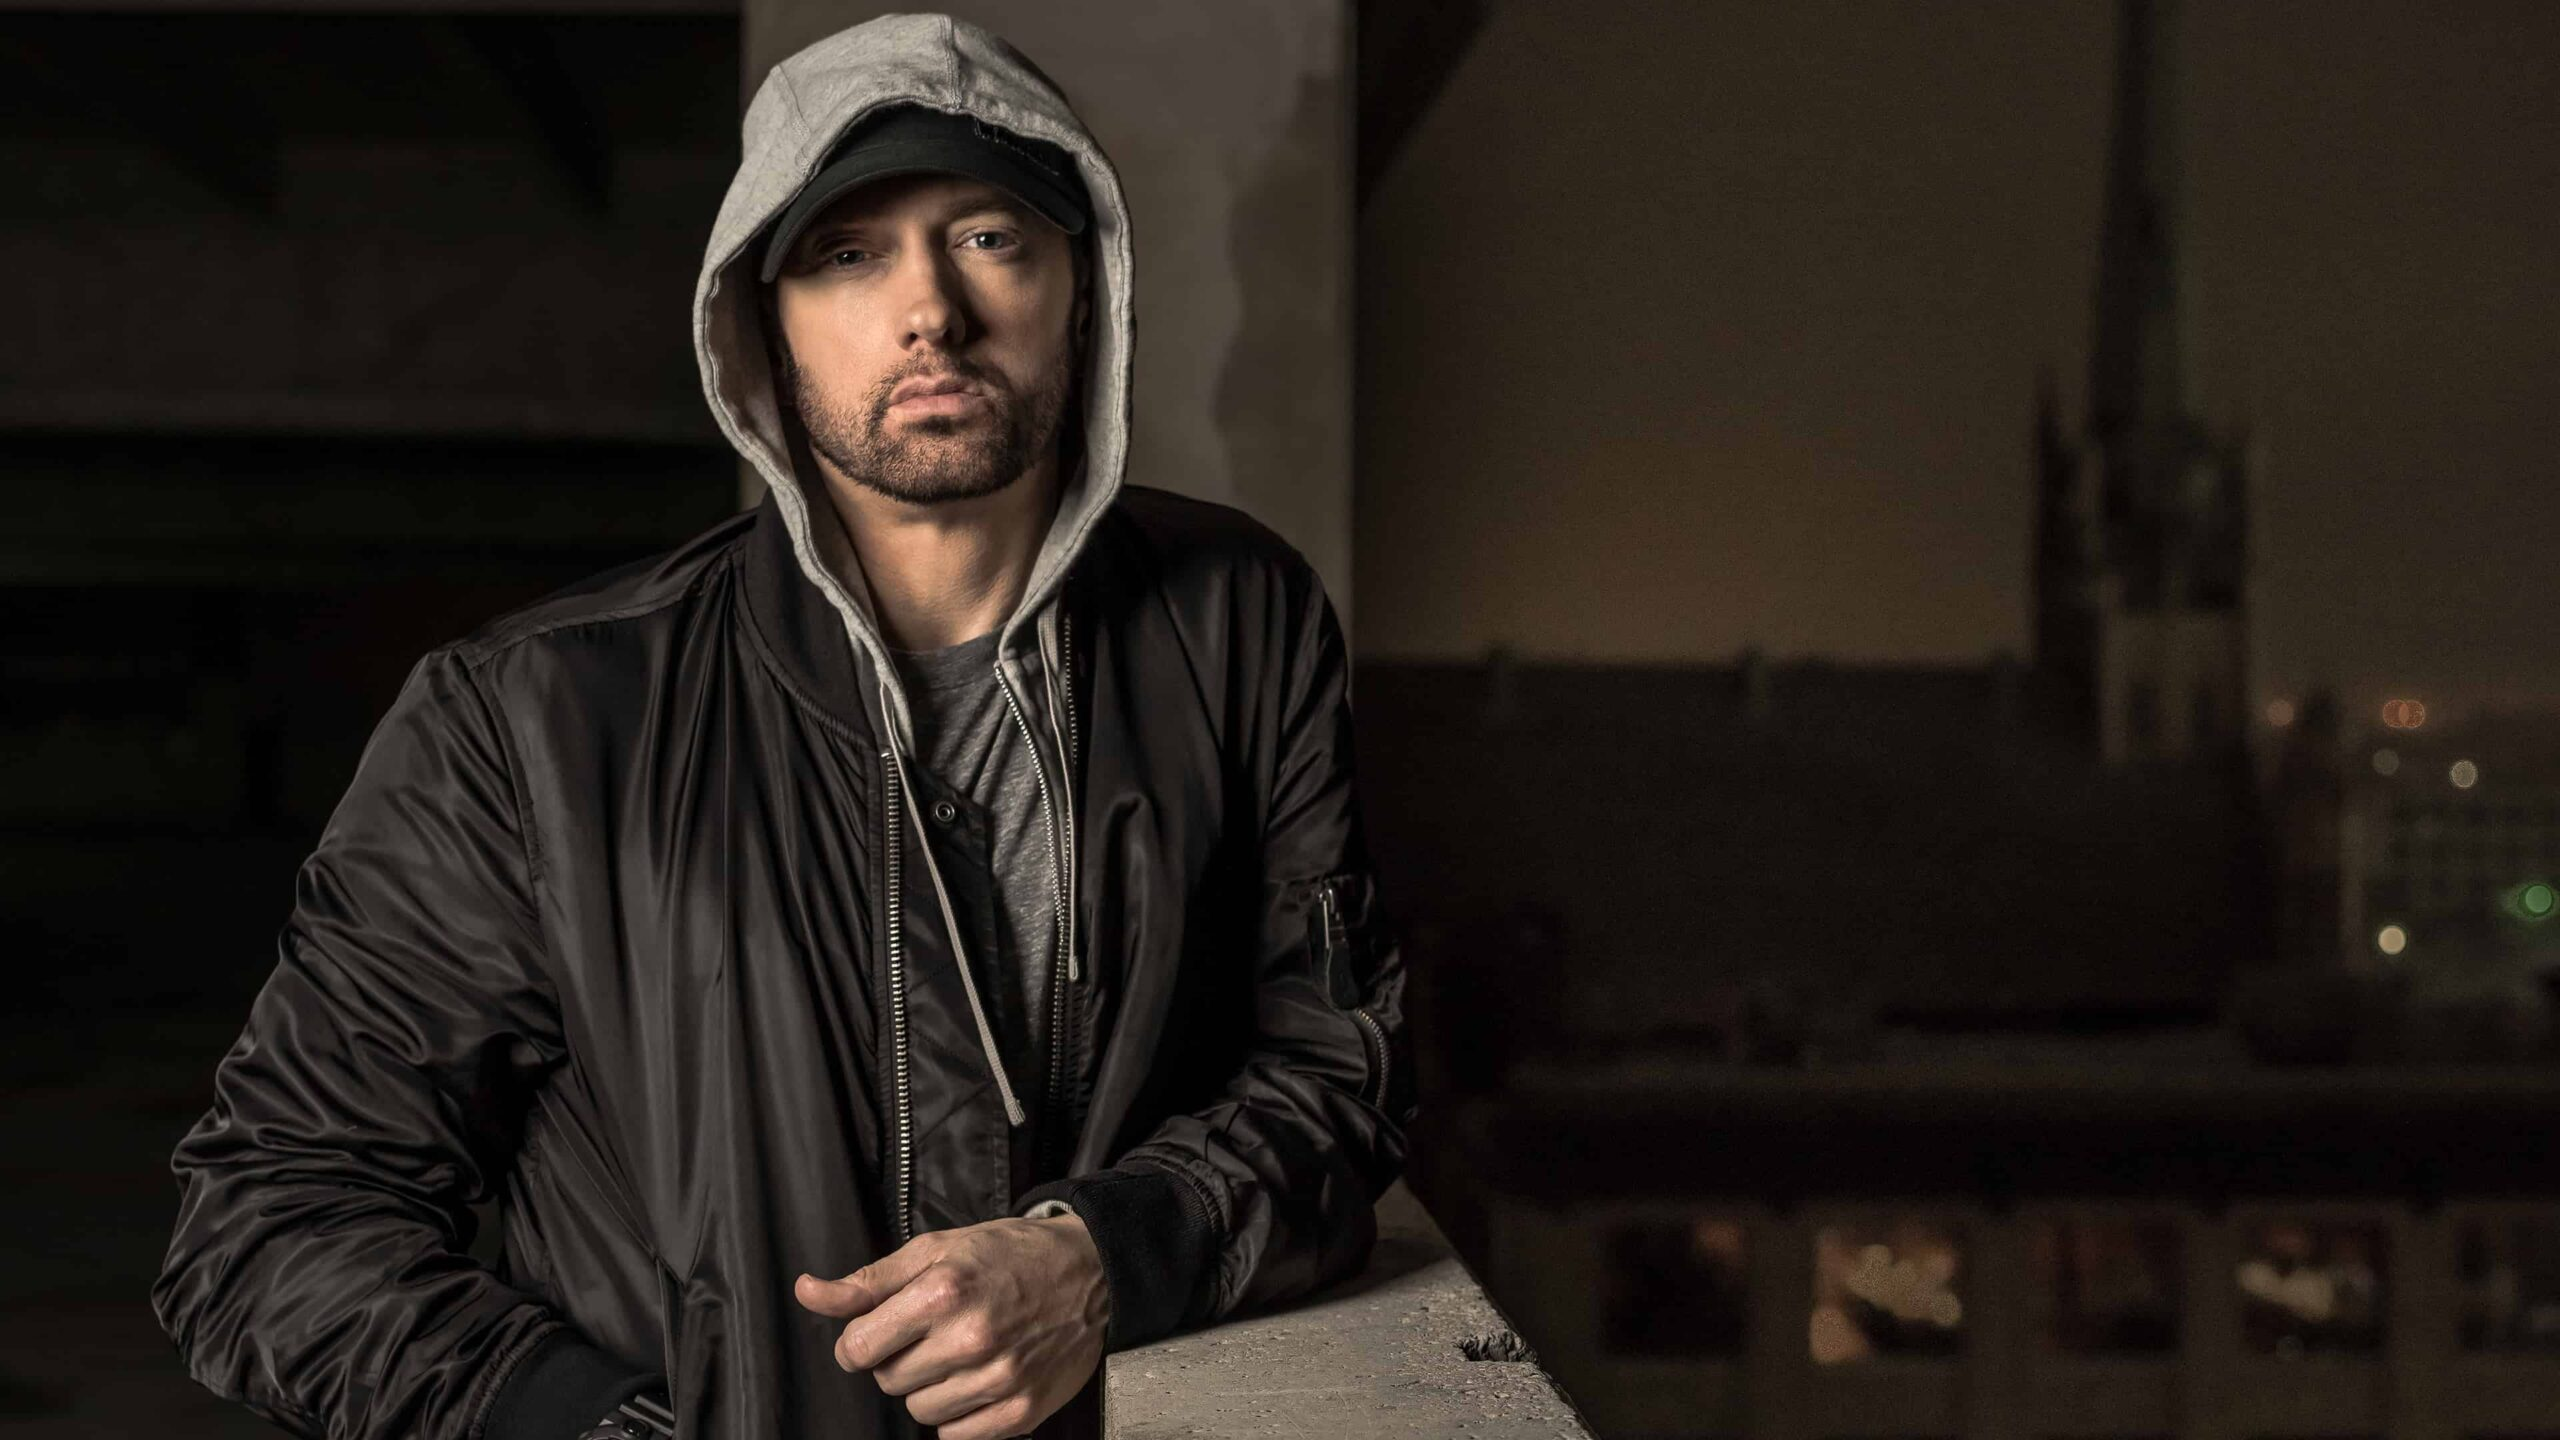 Eminem Phone number, Email Id, Fanmail, Instagram, Tiktok, and Contact Details